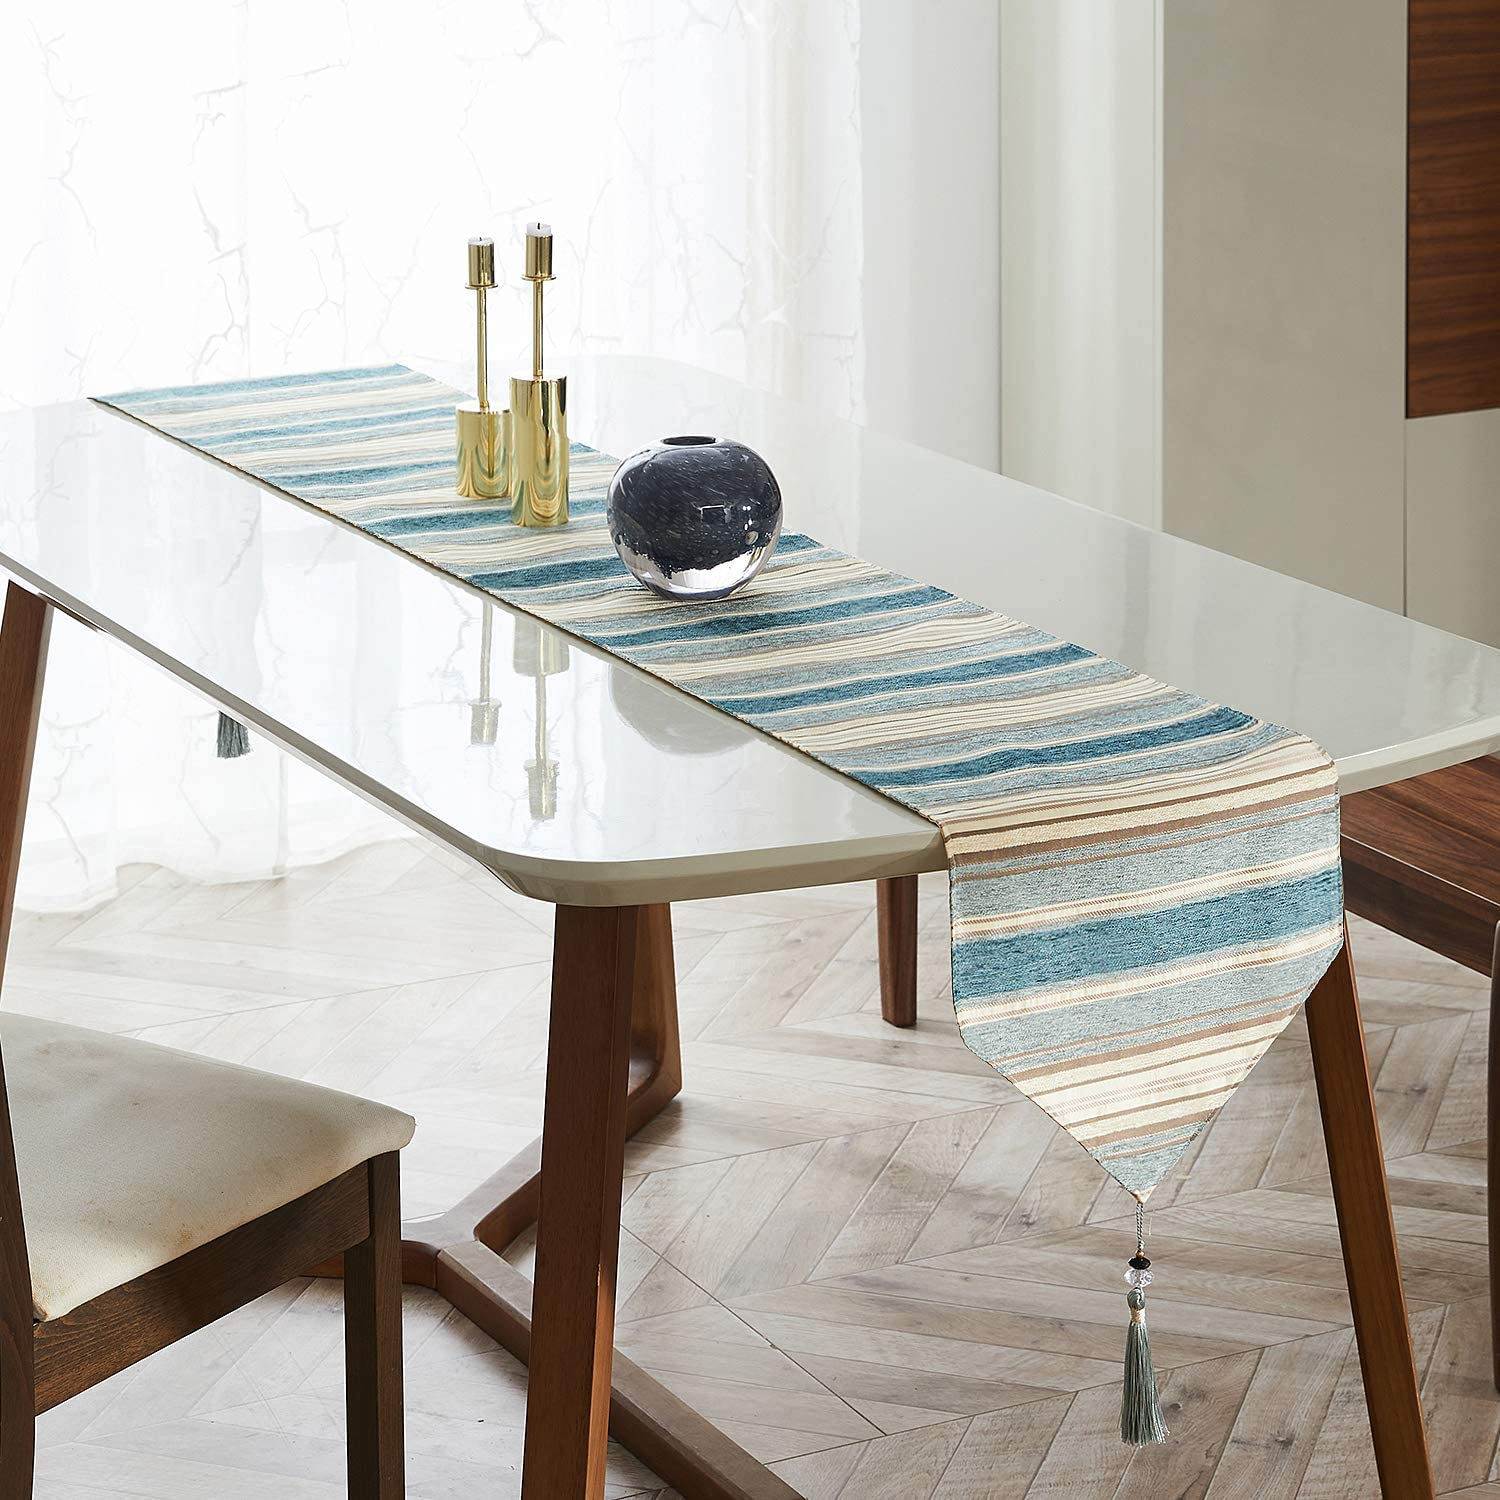 Top Finel Striped Cotton Linen Dining Table Runner with Tassels